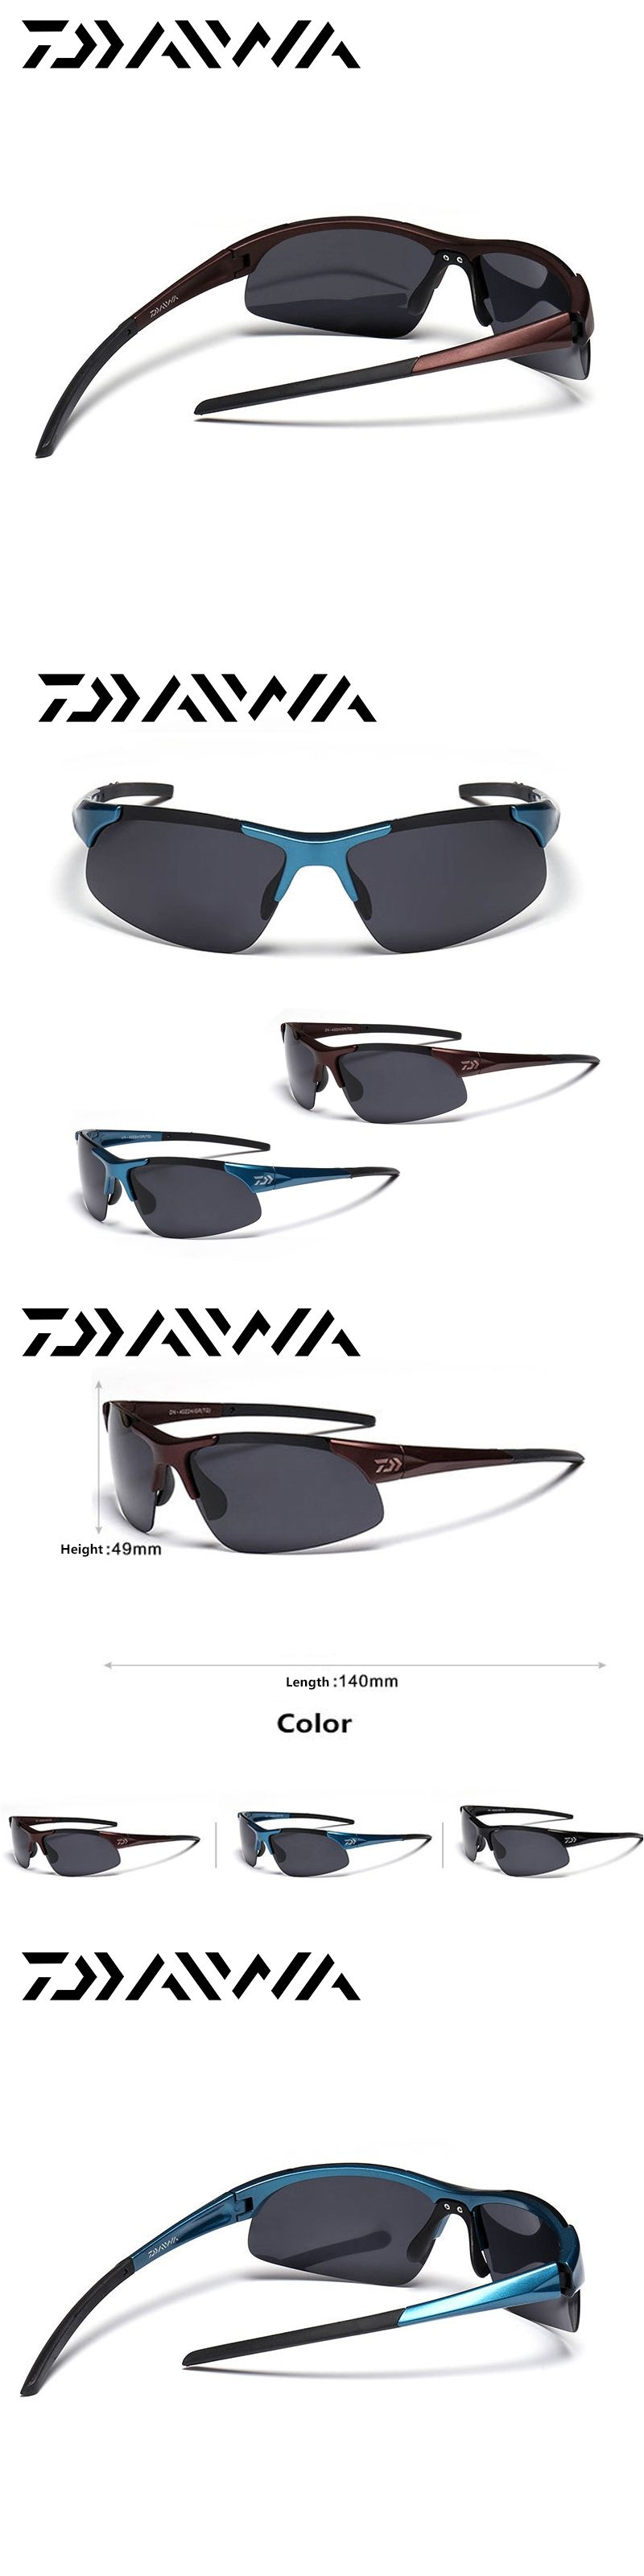 4693b79cca36 Daiwa outdoor sports fishing sunglasses men fishing glasses Cycling  climbing sunglasses with resin objective polarized pesca